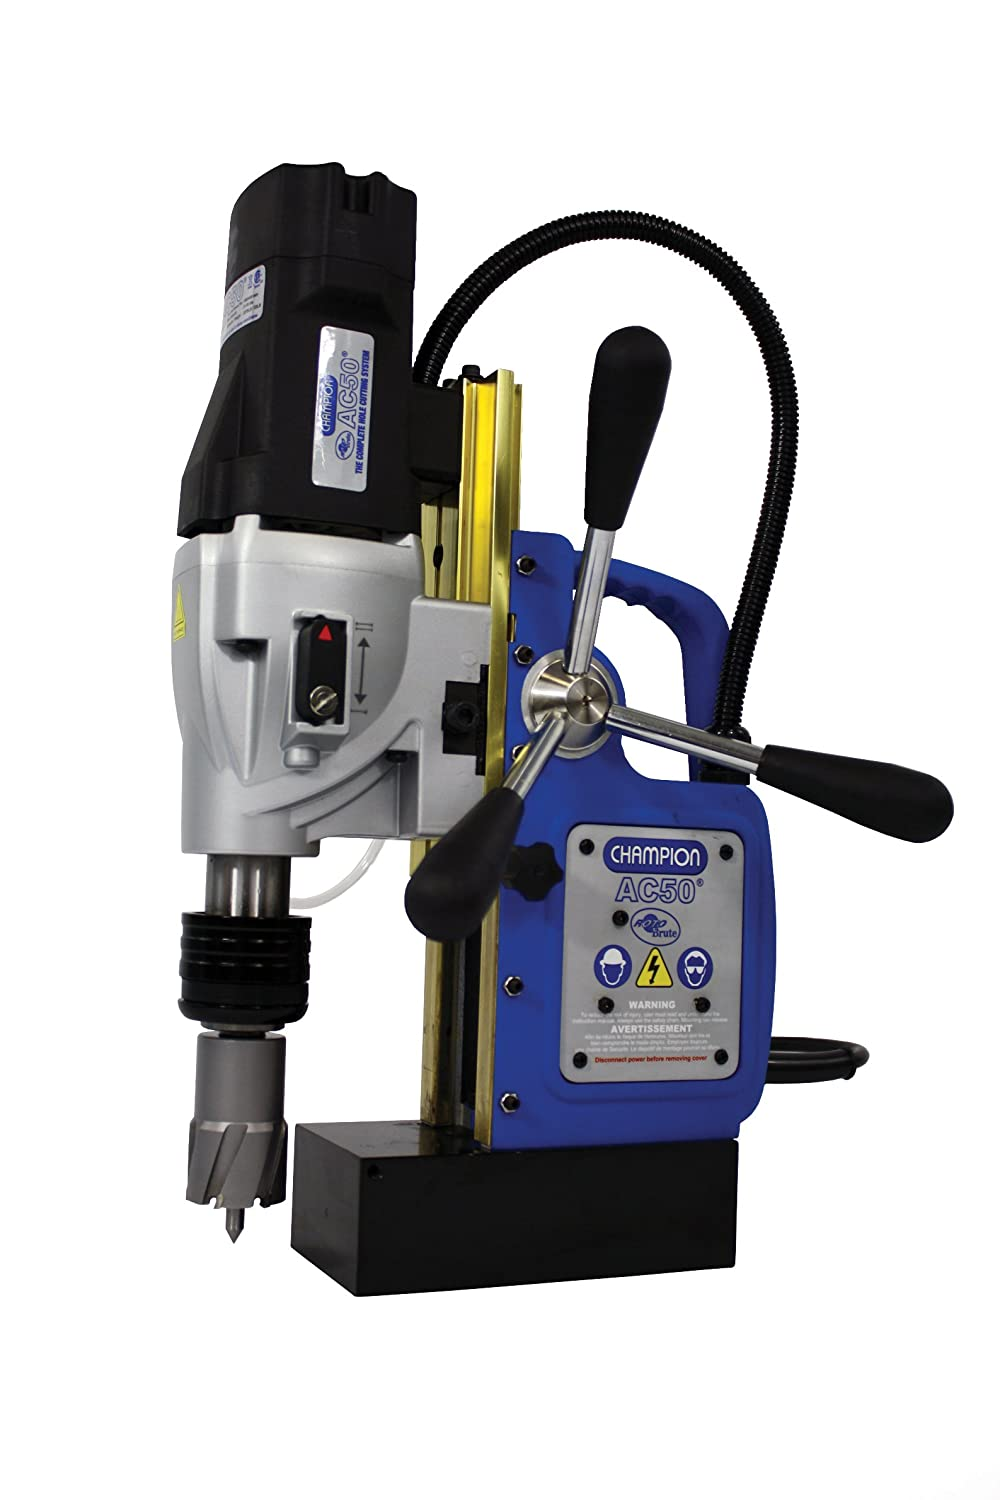 Champion Cutting Tool RotoBrute MightiBrute AC50 Portable Magnetic Drill Press